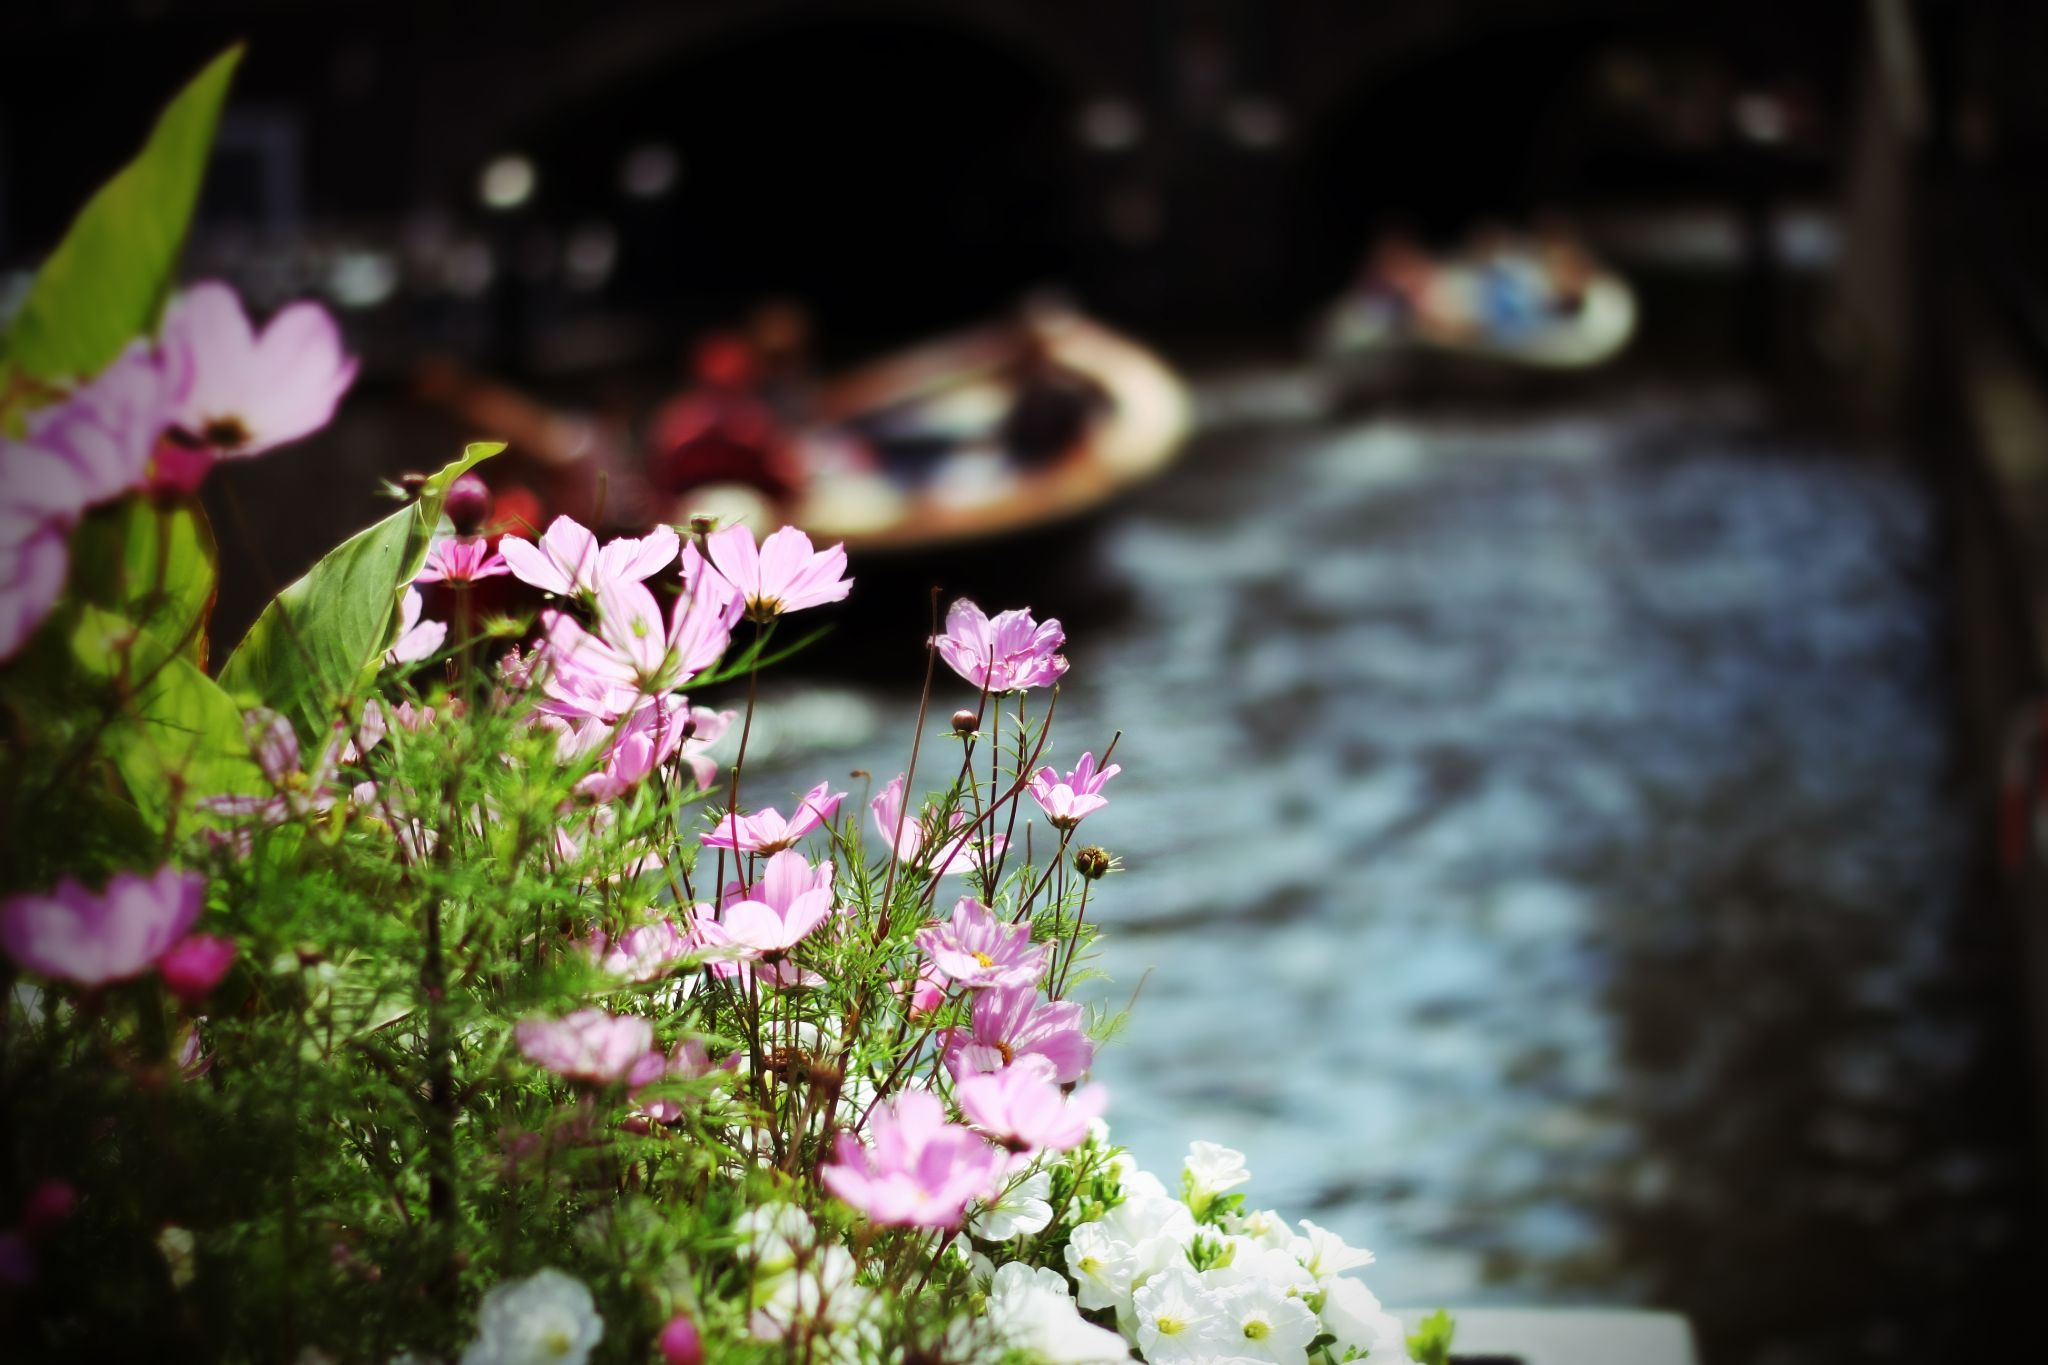 Flower & boats by Herodion Luas